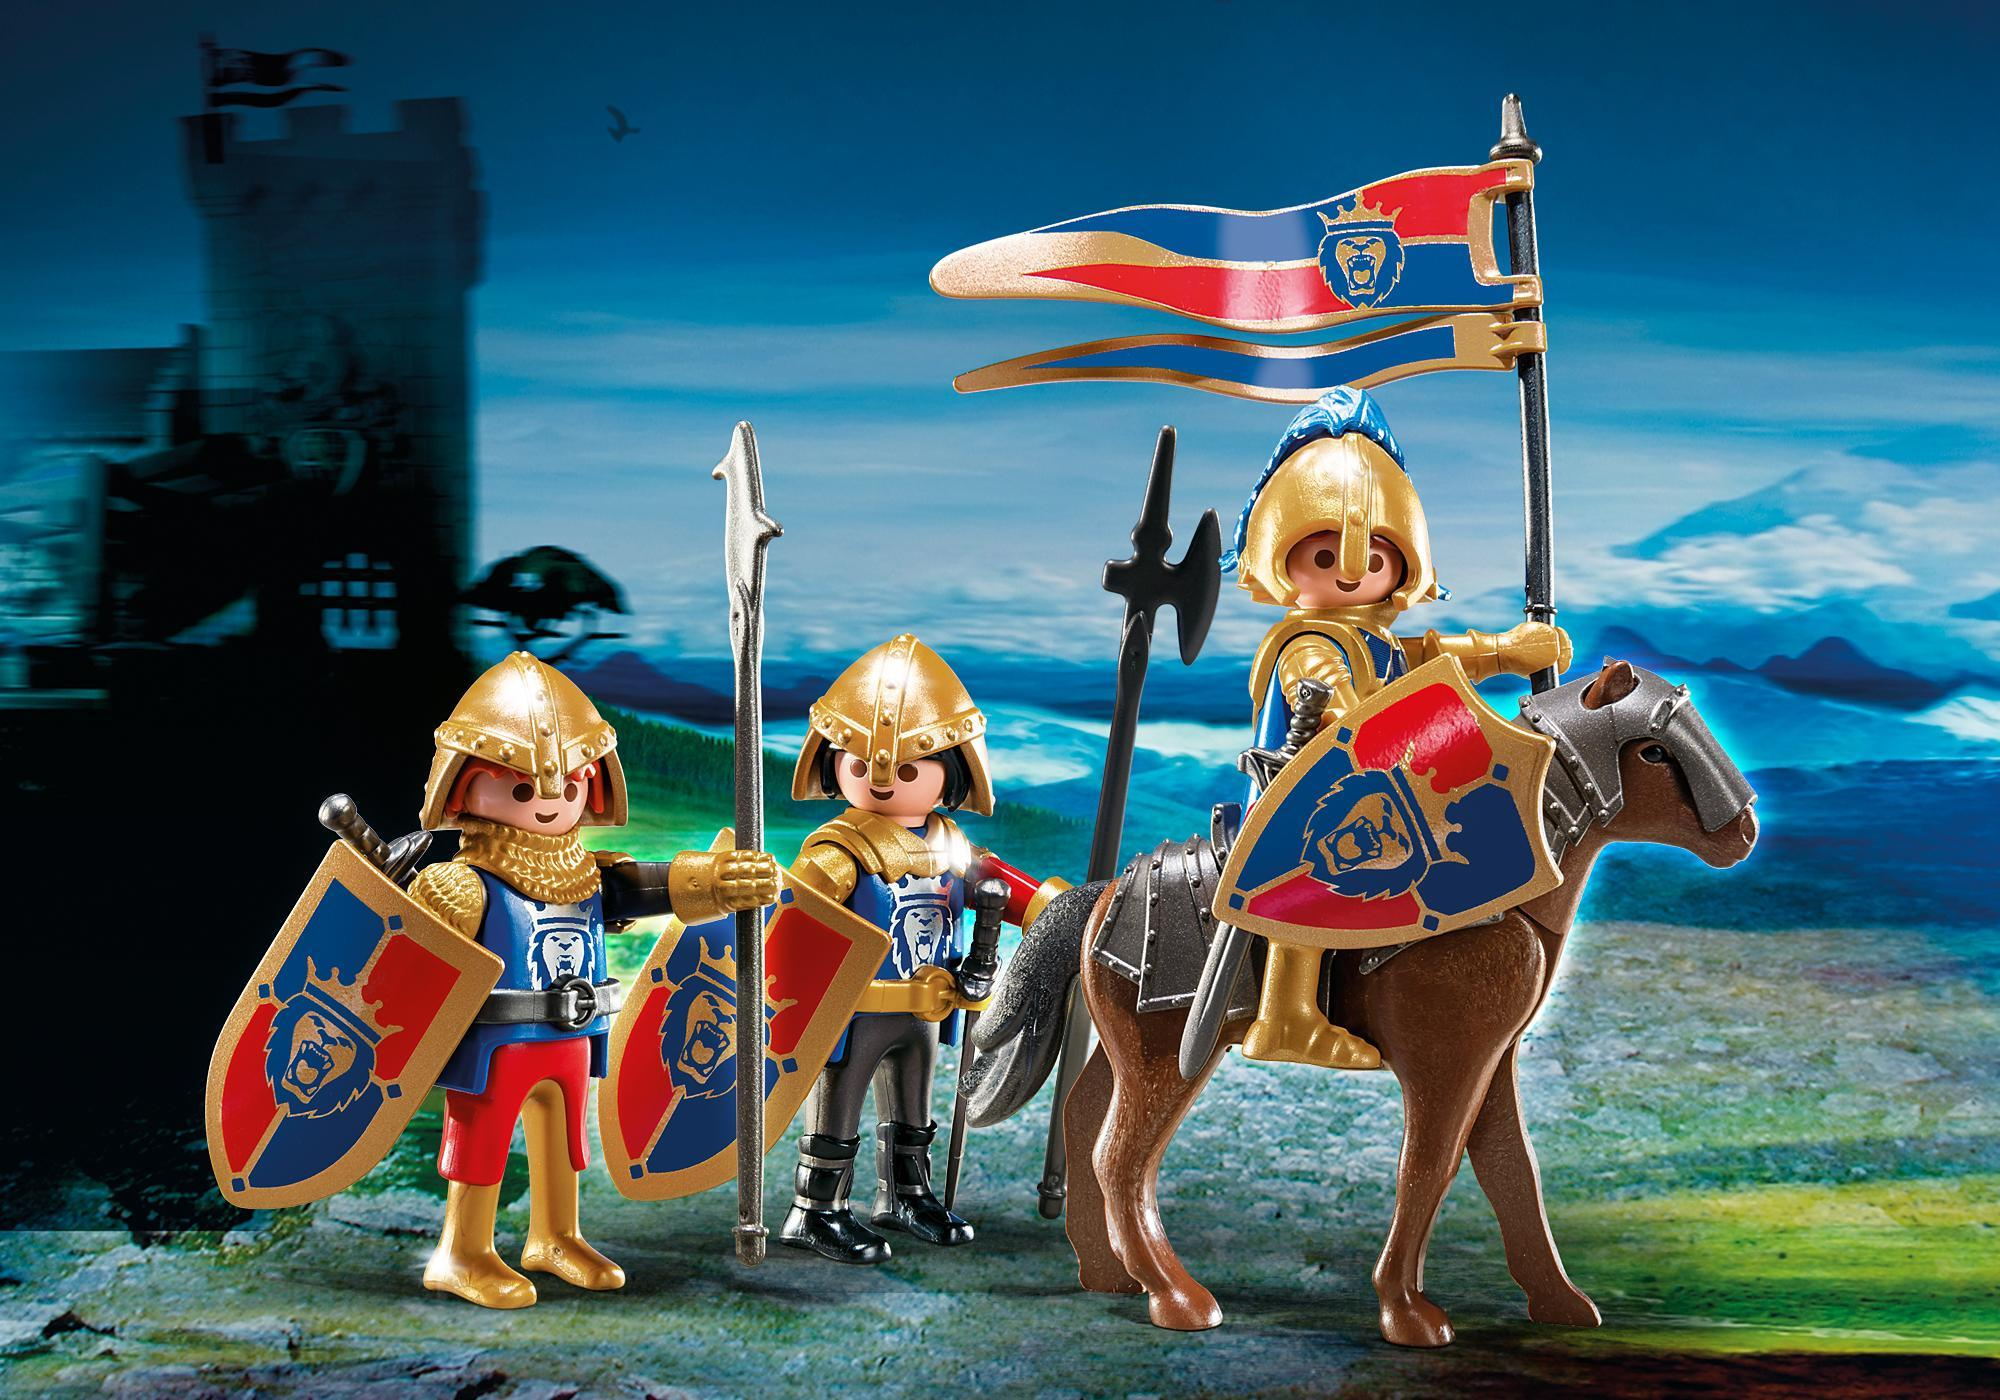 http://media.playmobil.com/i/playmobil/6006_product_detail